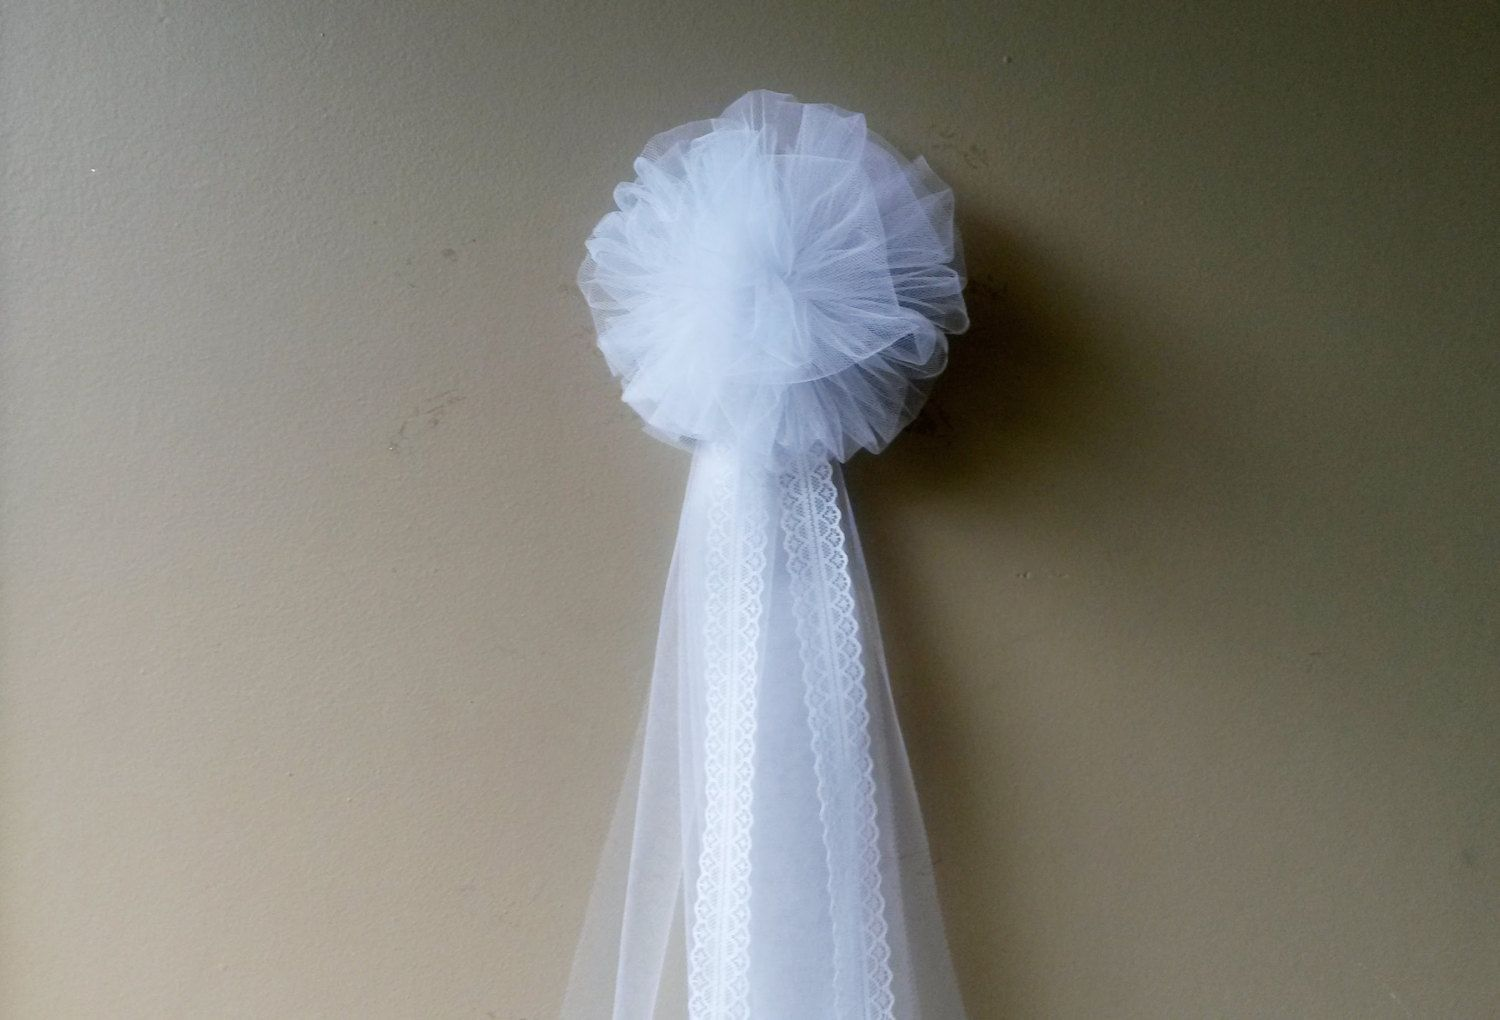 New to DarlingChicBowtique on Etsy: White Tulle Pew Bow Pom Tulle Pew Bow Wedding Pew Bow  Bridal Shower Bow Anniversary Bow Wreath Stair Door Mailbox Church Decoration (7.00 USD)